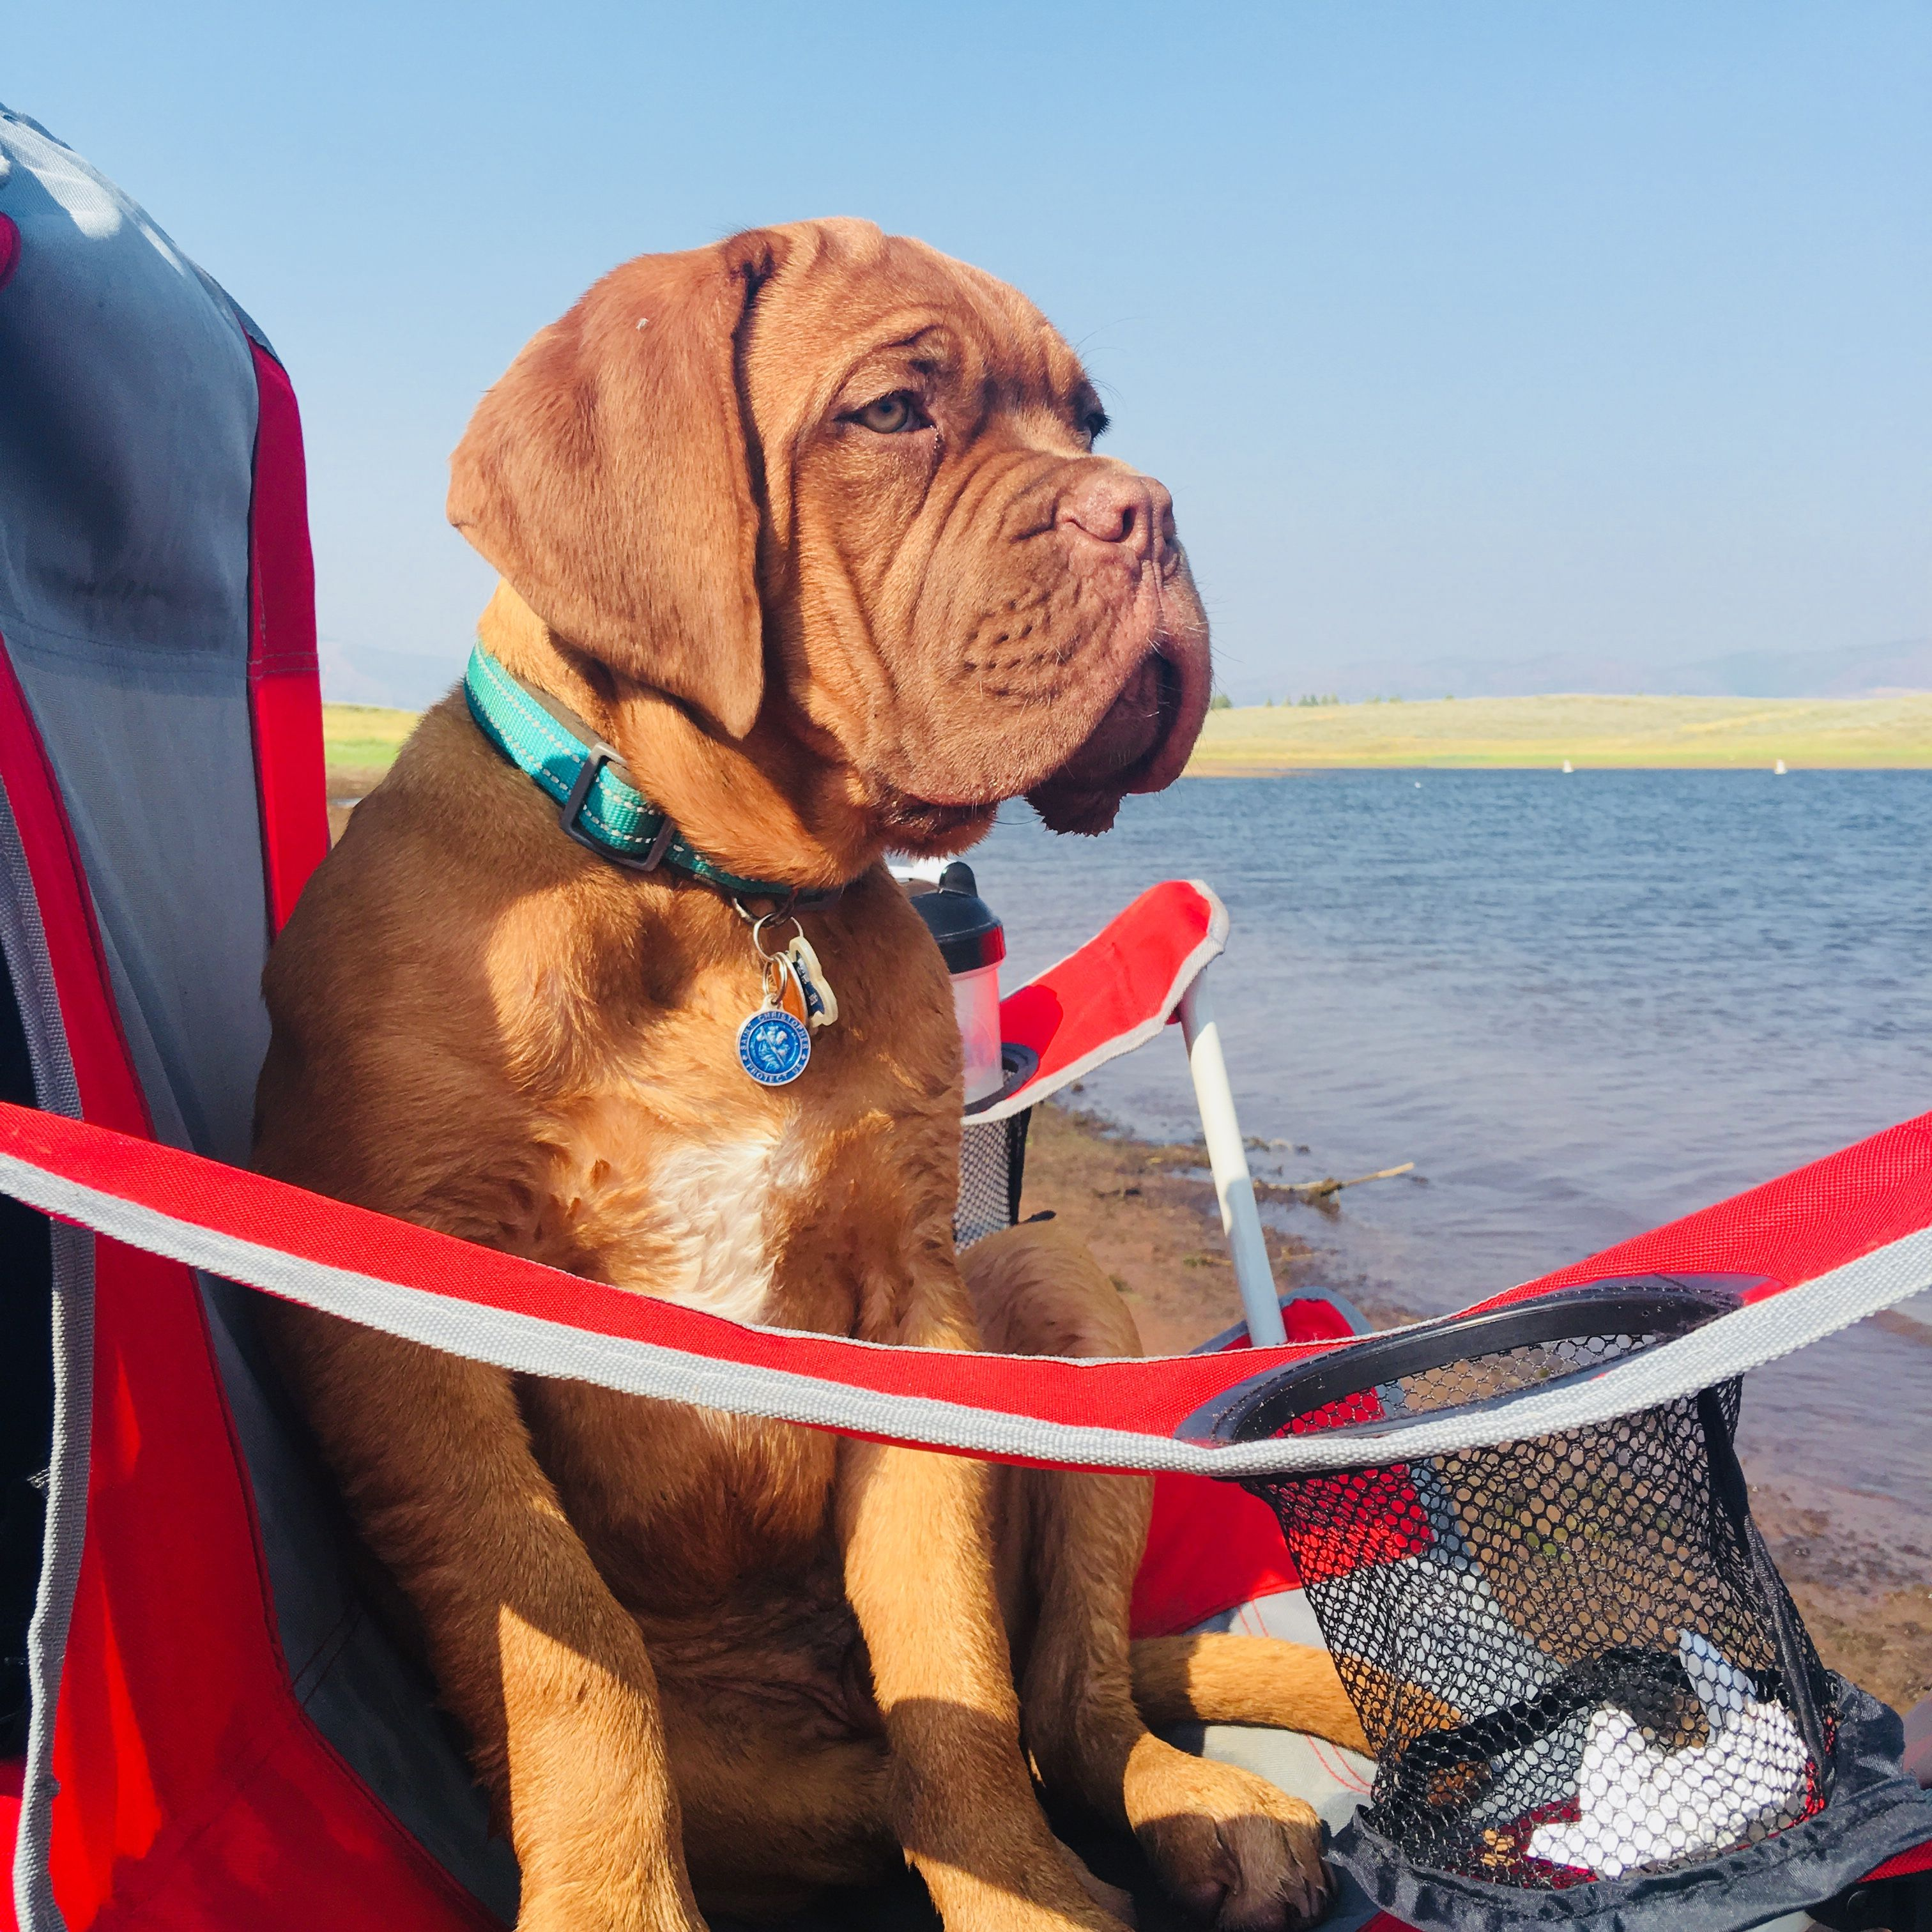 Cray Fishing At Strawberry Moses Had His Own Chair French Mastiff 17 Weeks Dogue De Bordeaux Mastiff Puppies Bordeaux Dog English Mastiff Dog